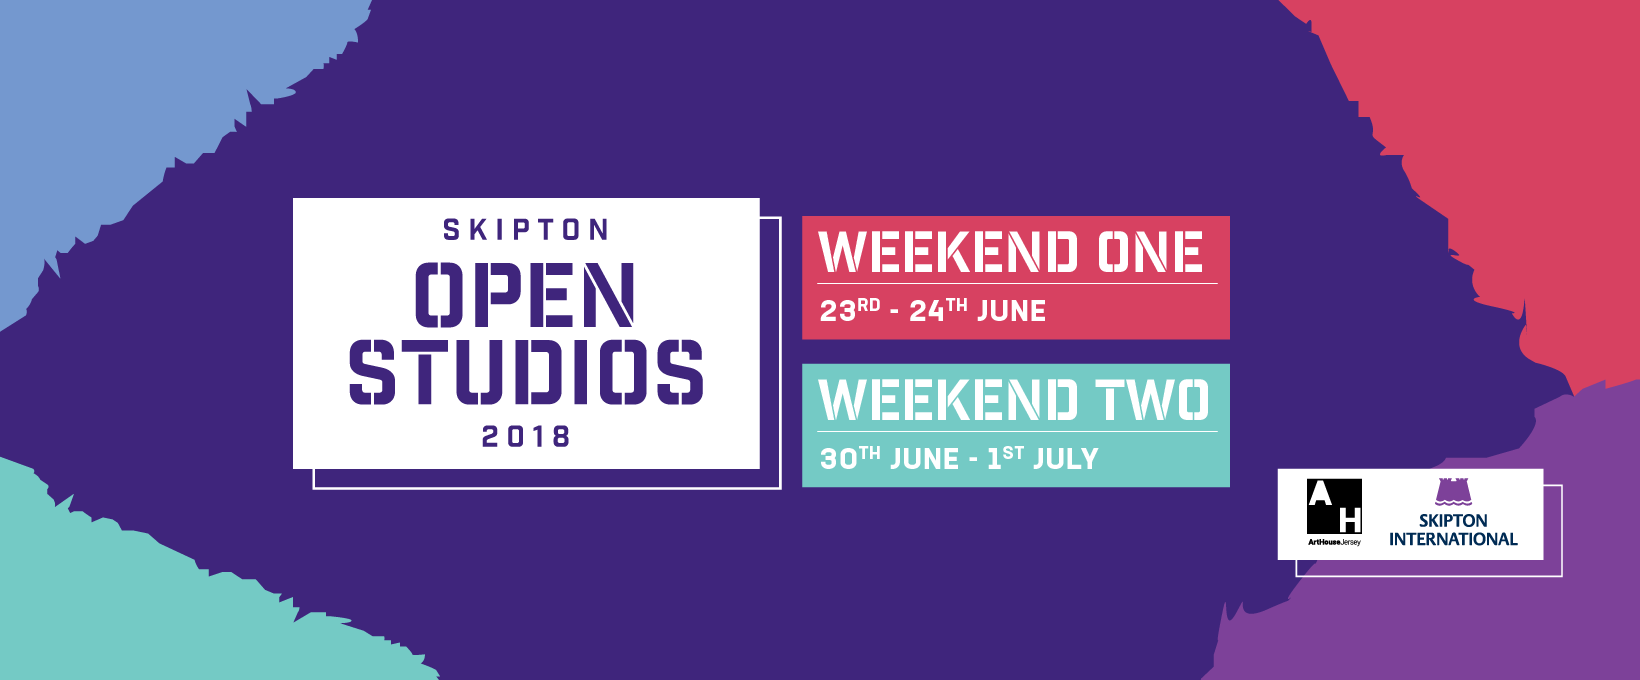 http://www.skiptonopenstudios.je/artists/gabriella-street  The website is up for 'Skipton Open Studios' with all the up to date information you need.  I will be exhibiting my work from the 23rd June - 1st July in Picquet House, St. Helier.